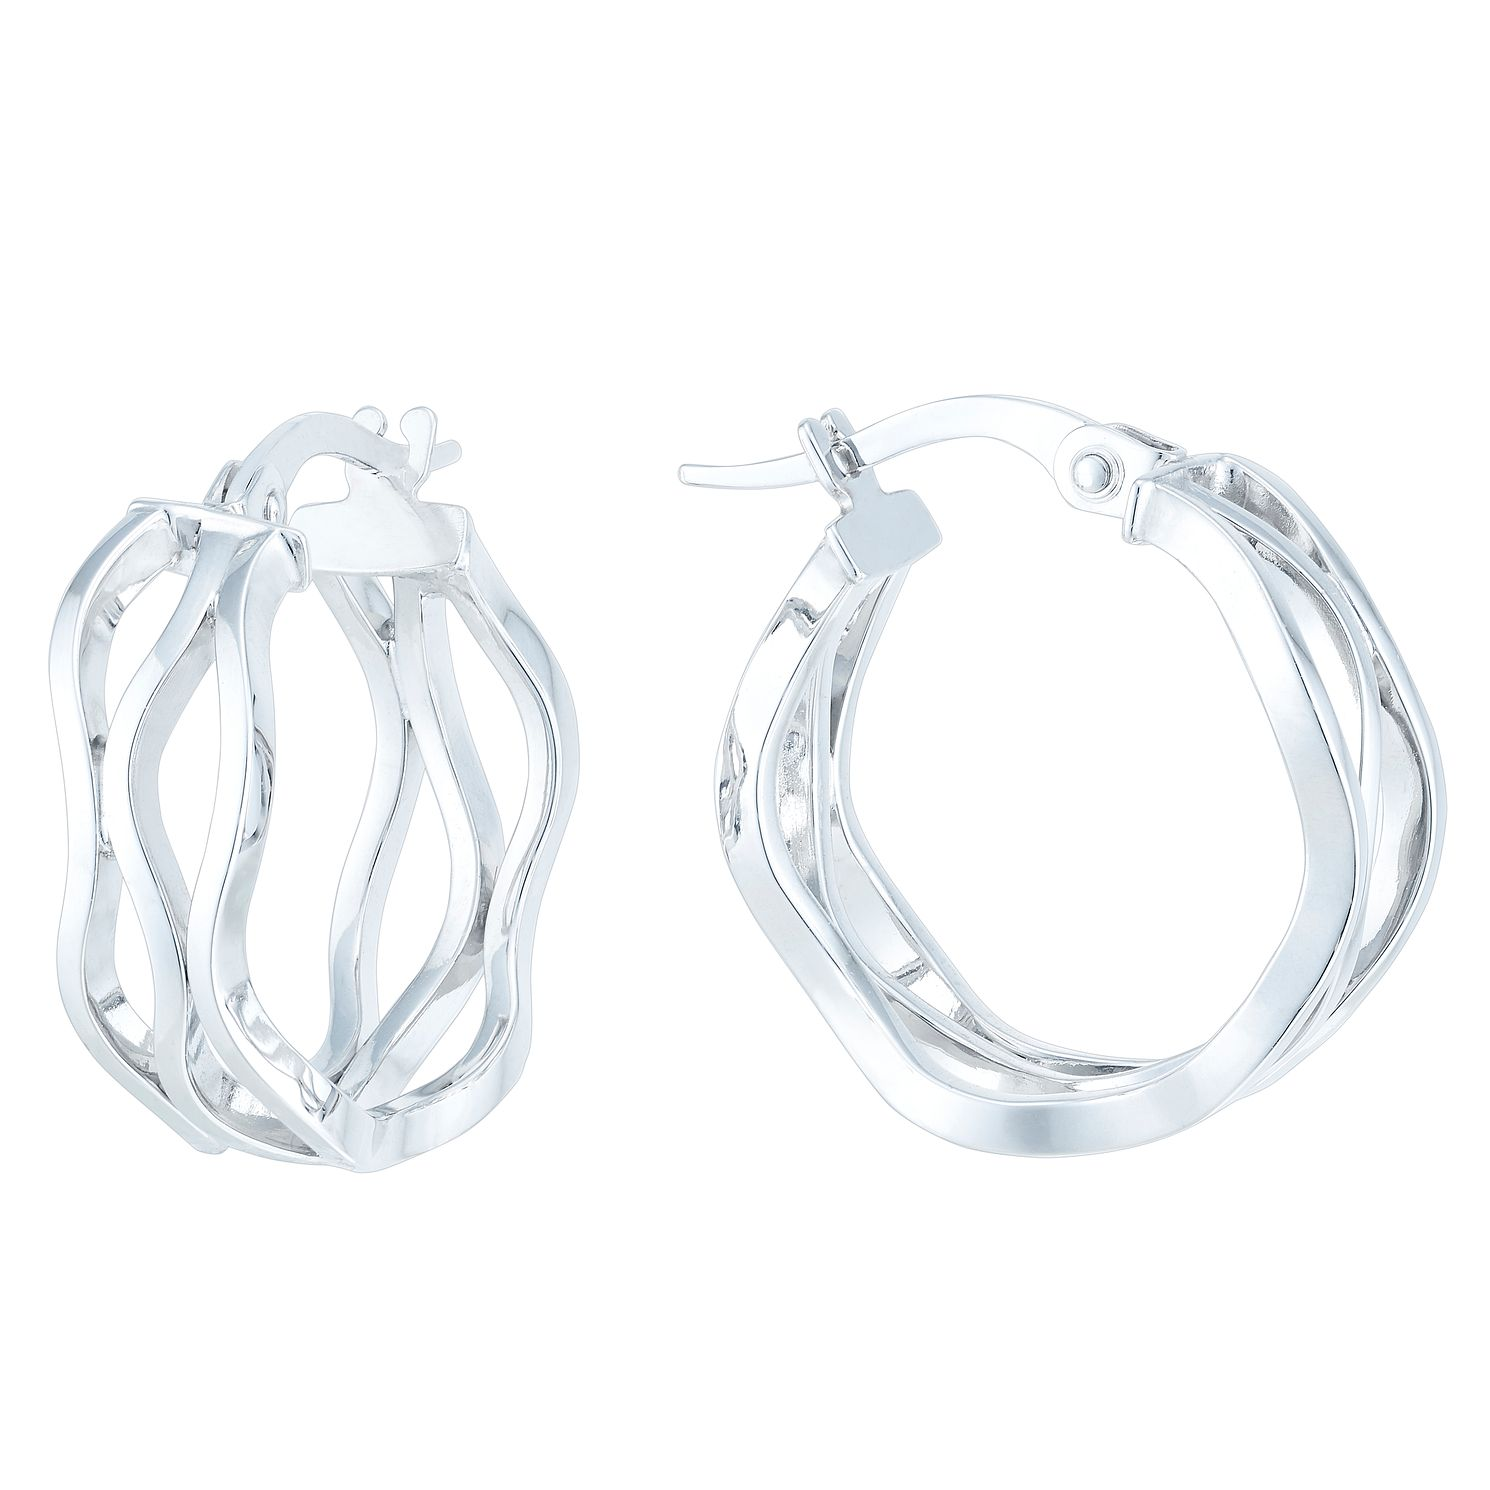 9ct White Gold Triple Wave Creole Earrings - Product number 6382576